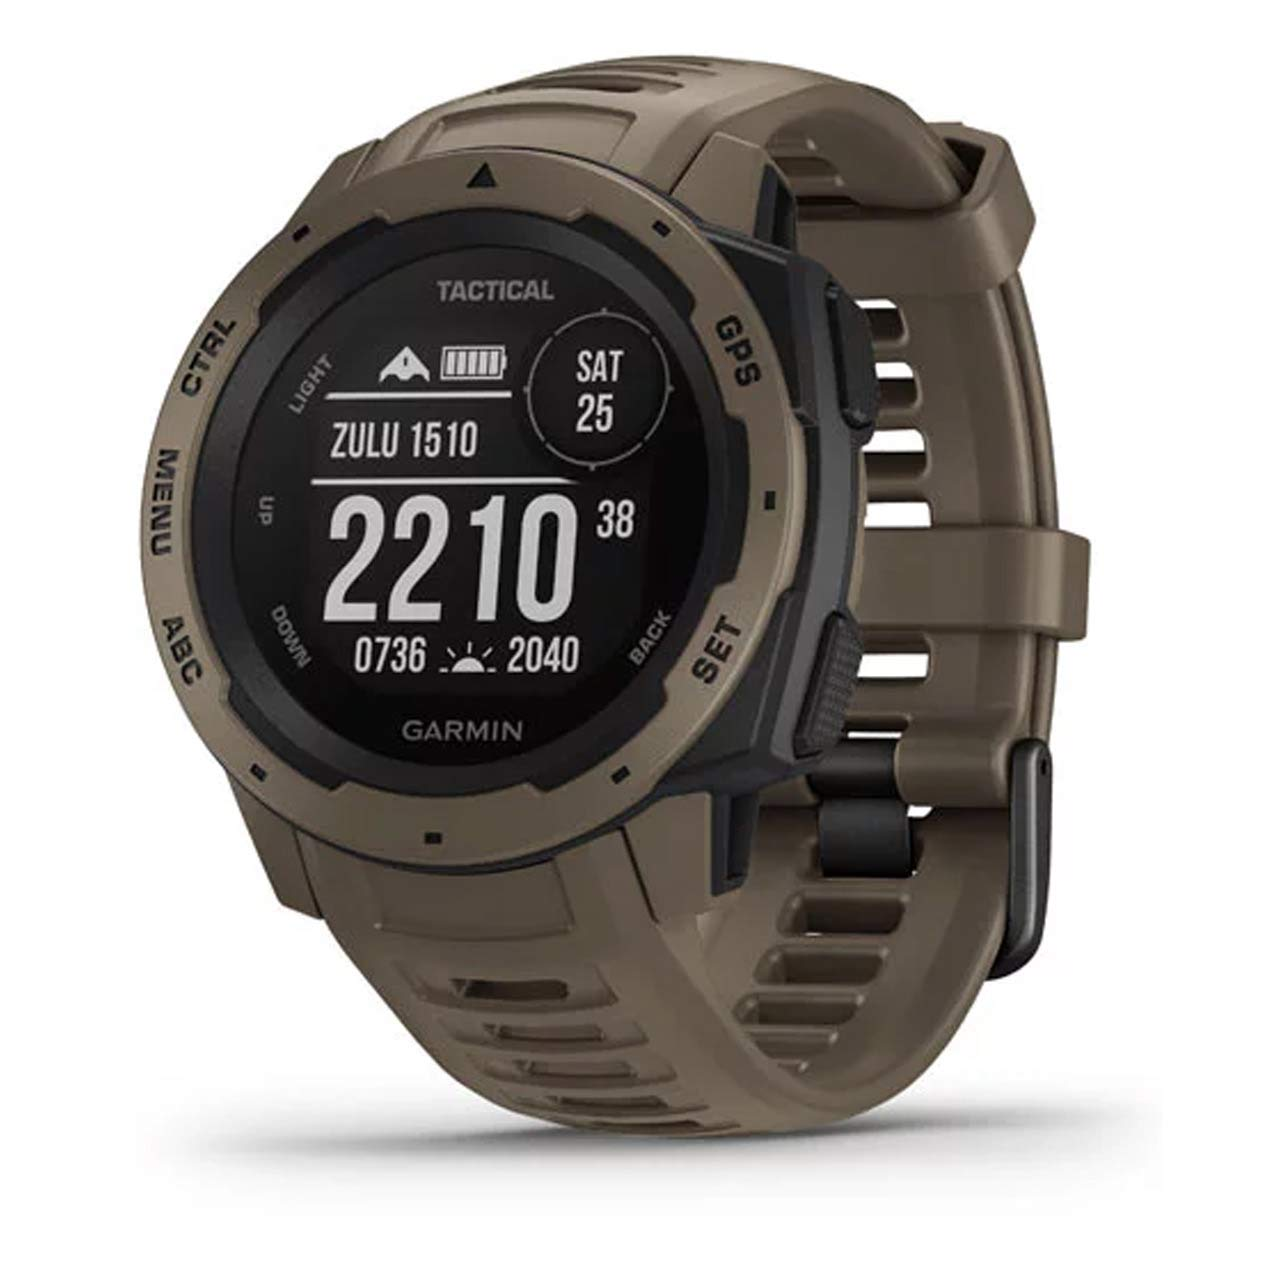 Garmin Instinct Tactical, Rugged GPS Watch, Tactical Specific Features, Constructed to U.S. Military Standard 810G for Thermal, Shock and Water Resistance, Tan by Garmin